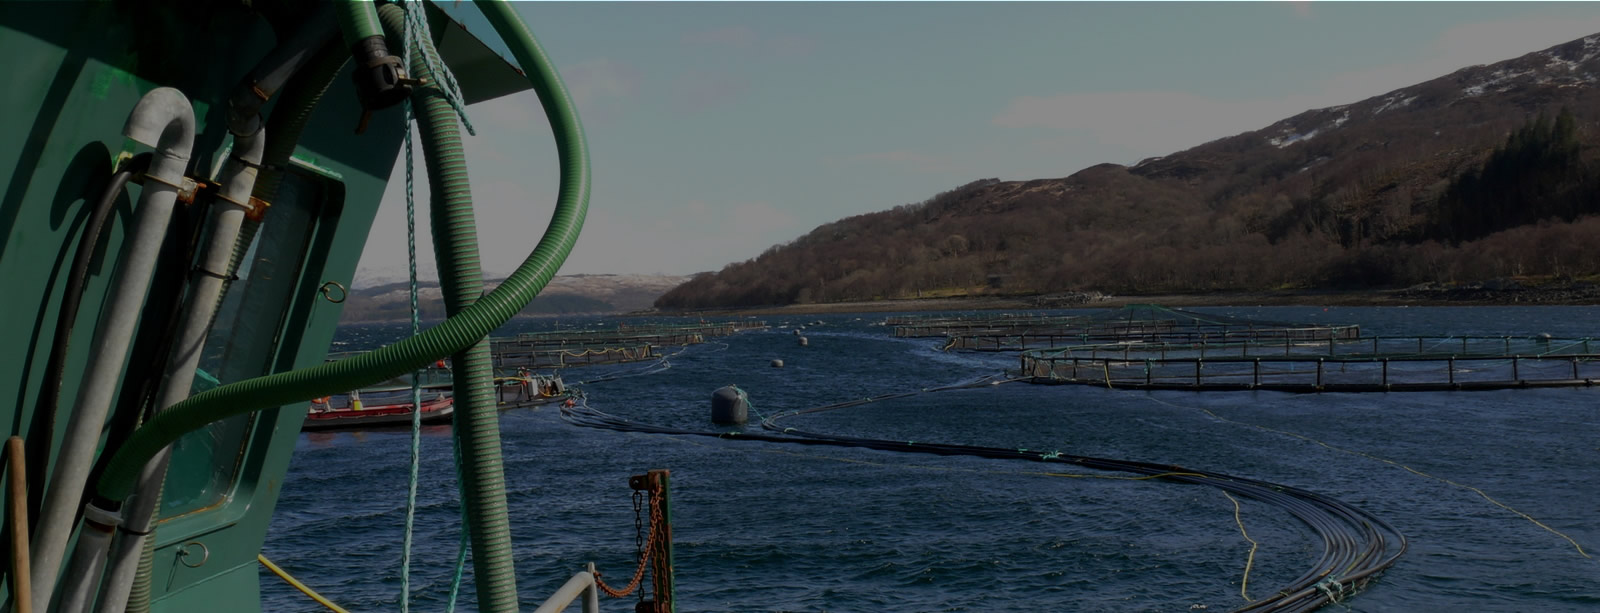 Scottish Salmon Farm